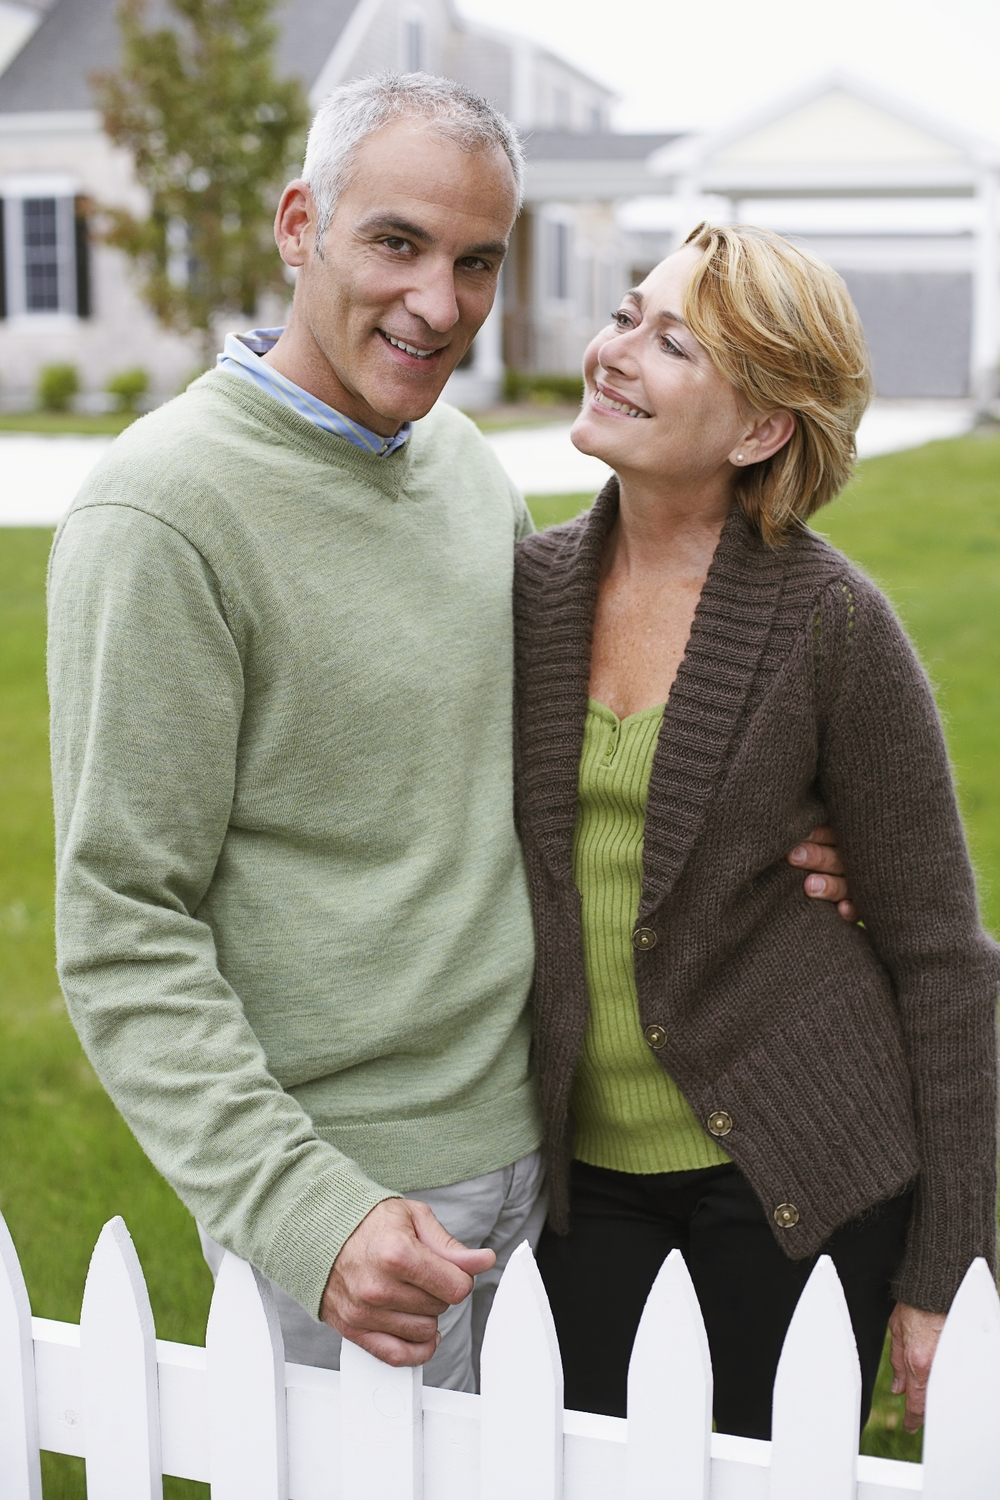 Dr. Sunseri can provide you with a happy, healthy smile.